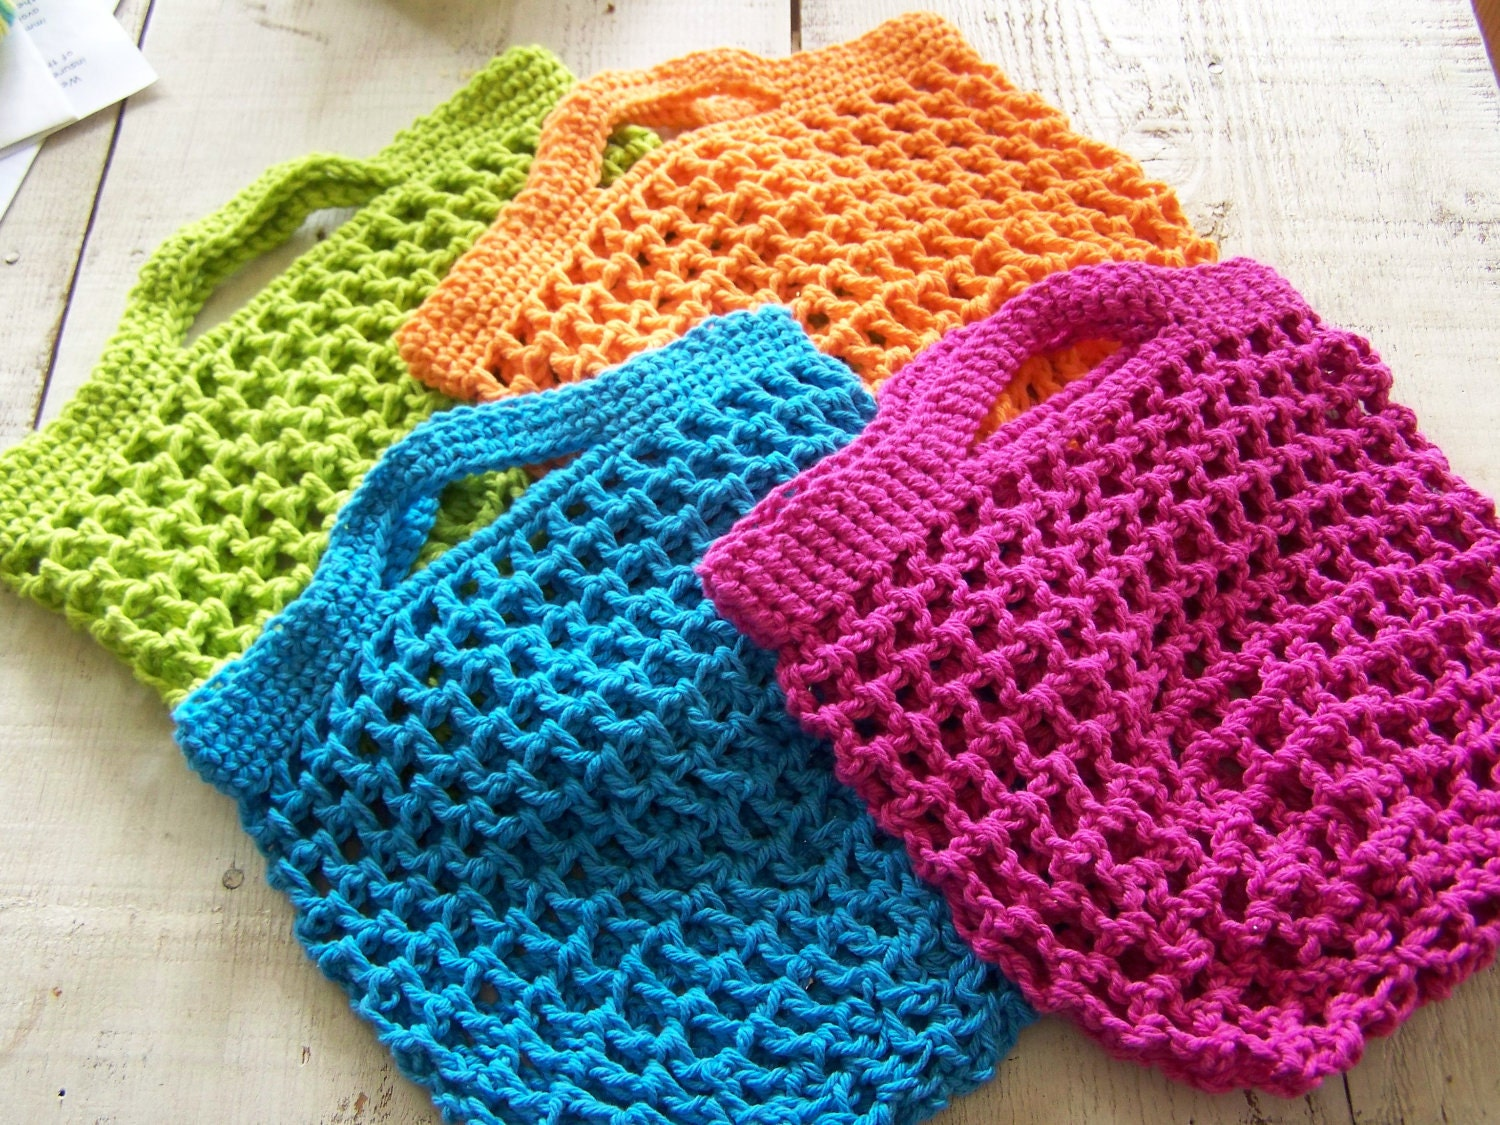 Crochet Grocery Bag Pattern : Grocery Shopping Bag Pattern handmade by BloomOrganicsDesigns